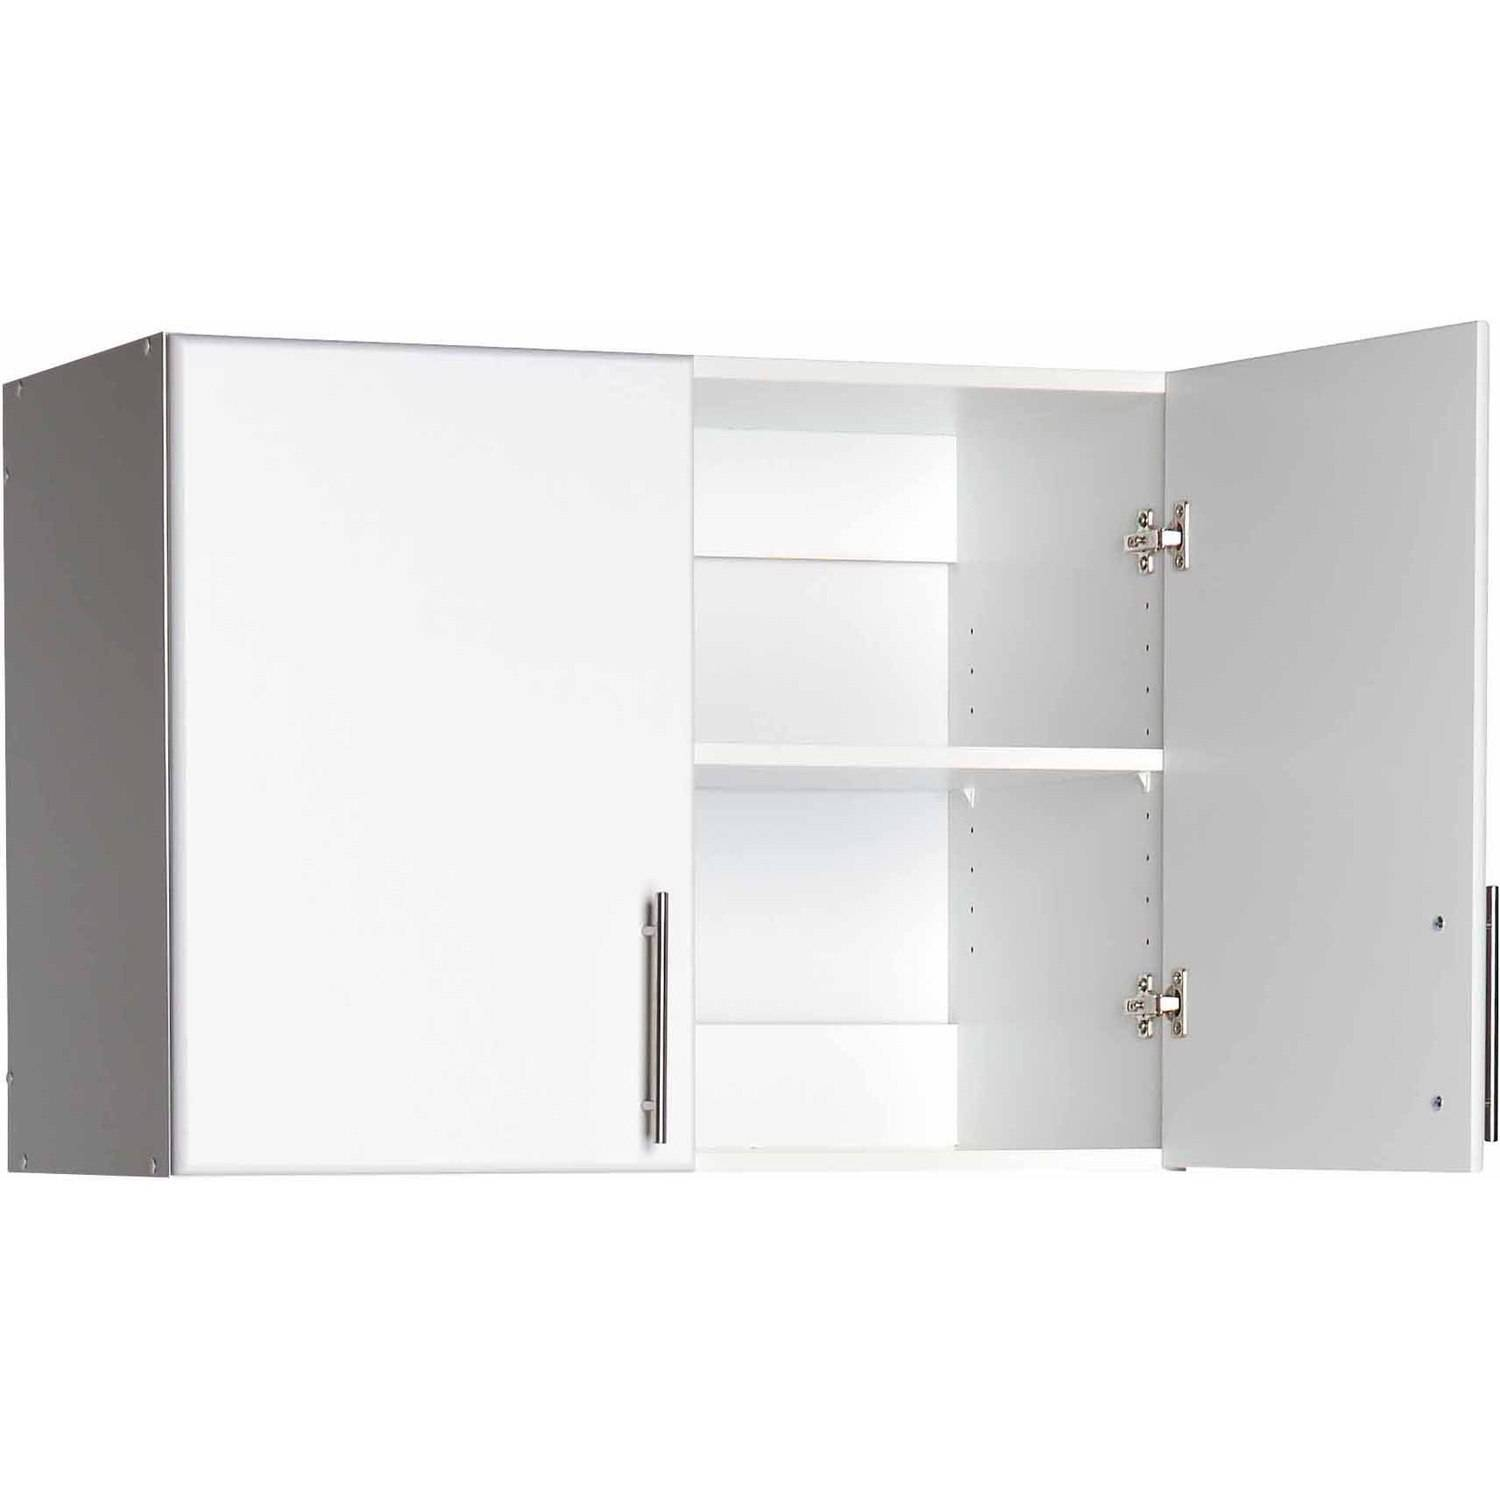 "Prepac 32"" Topper and Wall Cabinet, 2-Door"